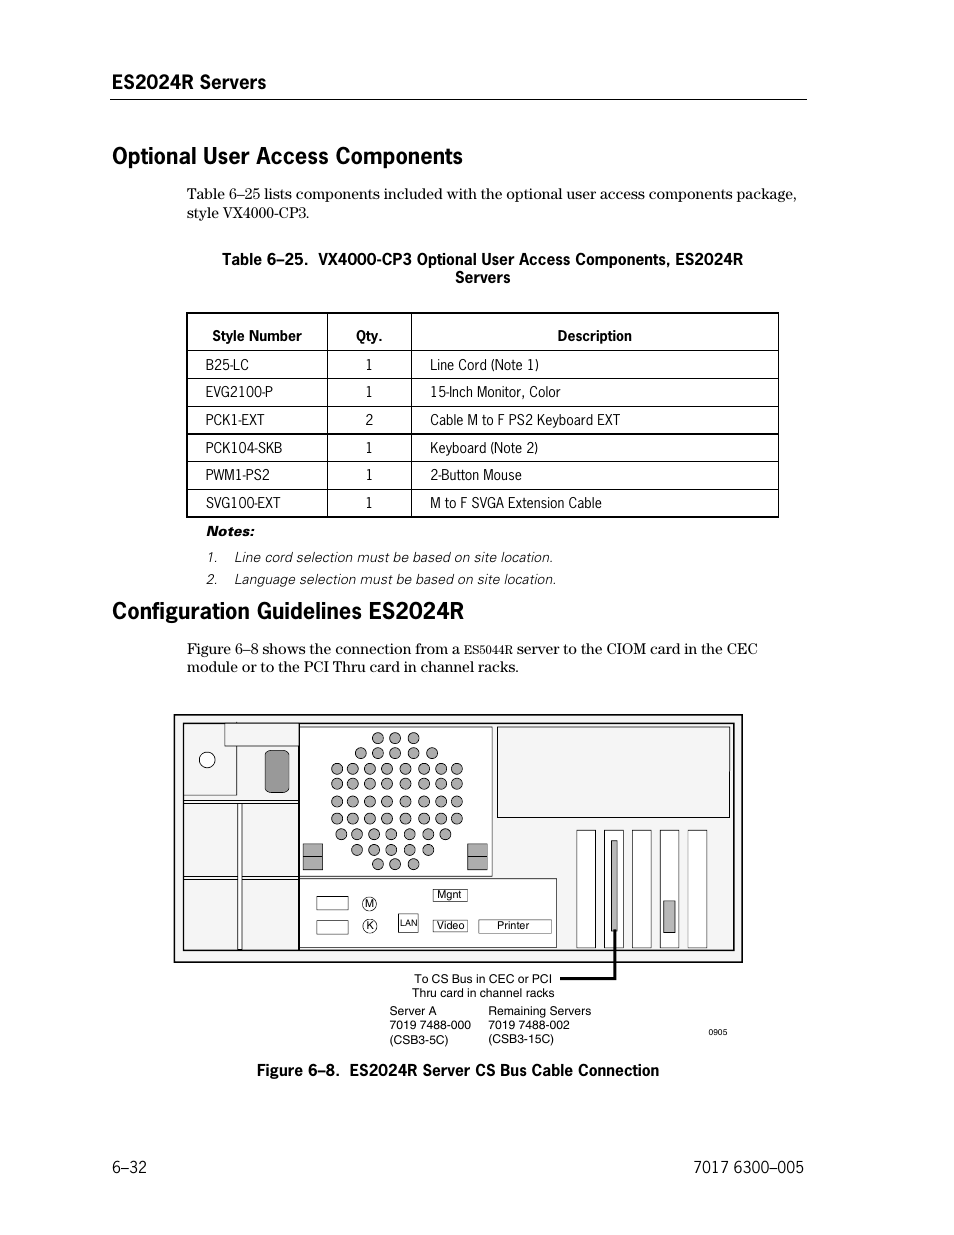 Optional user access components, Configuration guidelines es2024r